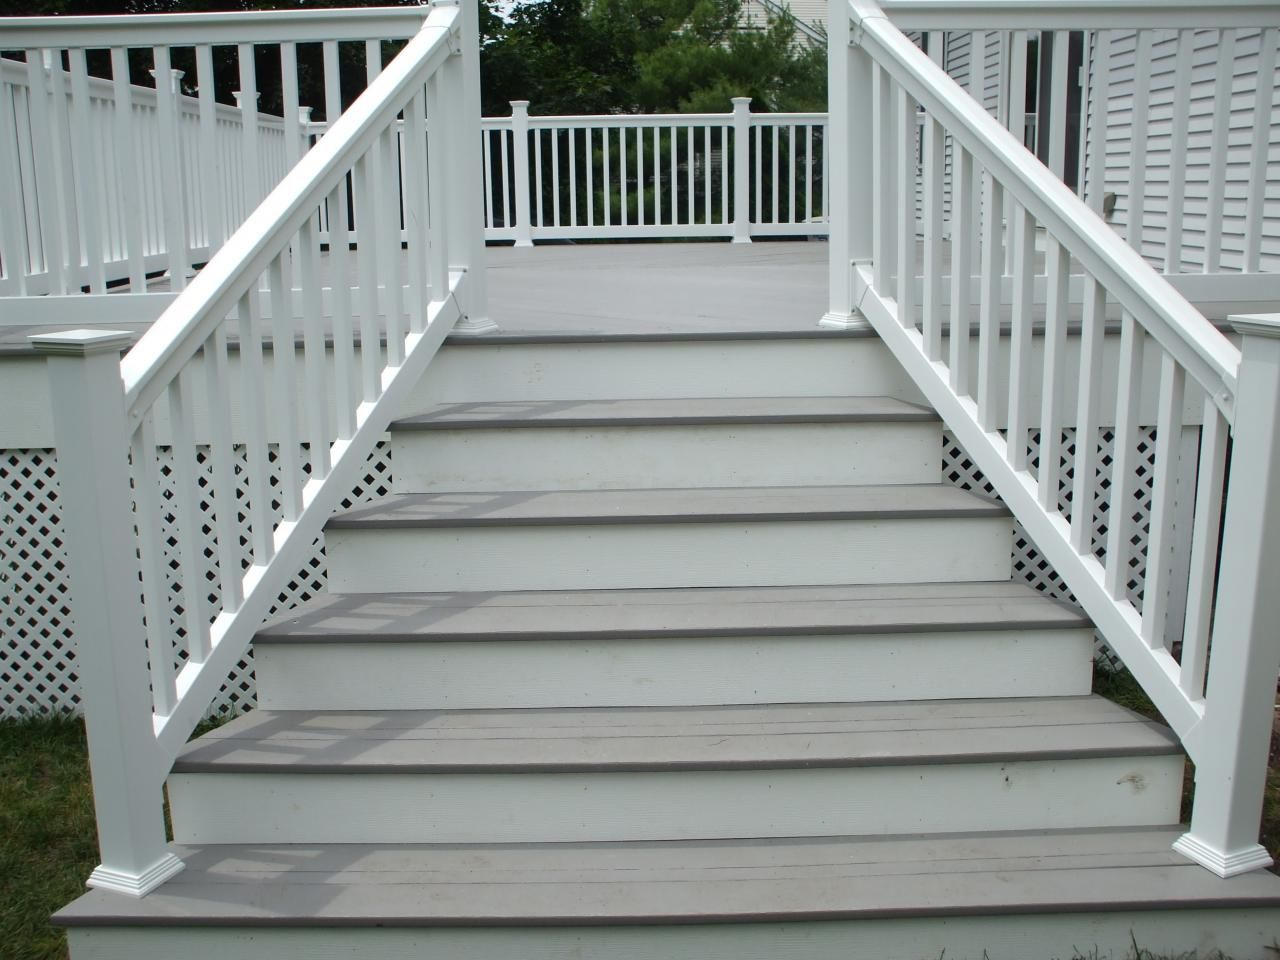 Exterior Designs,Contemporary Stairs With Oak Wooden Deck And White Glossy  Color Railings Design Ideas For Your Front Yard,Inspiring Outdoor Wood  Stairs ...